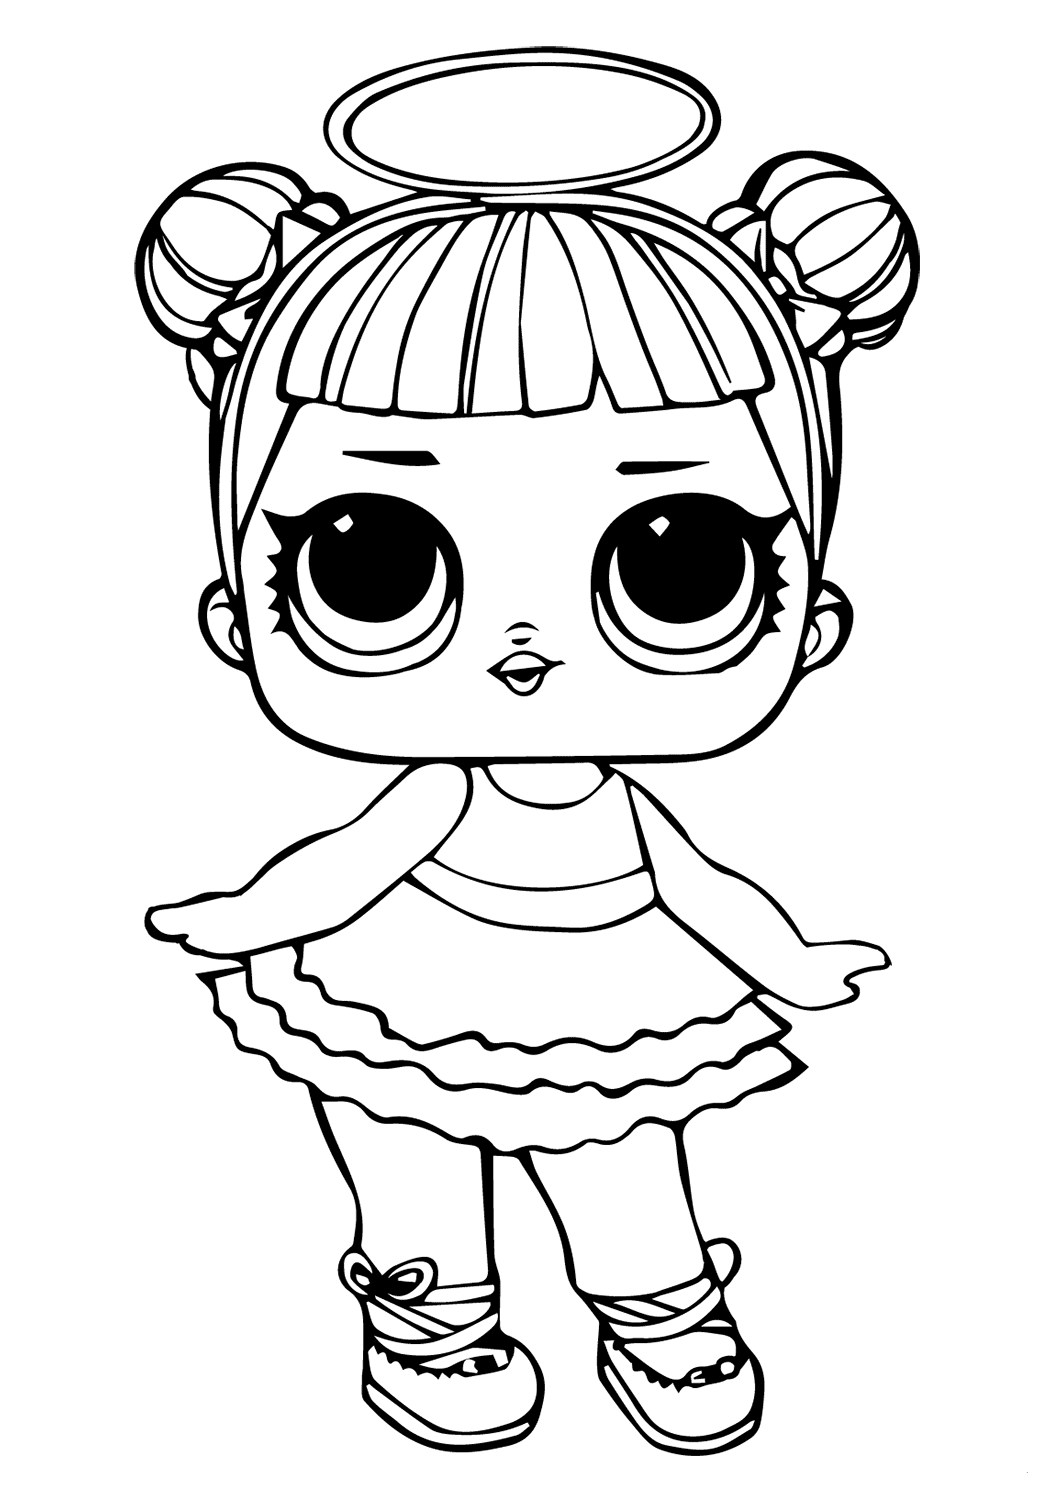 Lol Doll Coloring Pages Com Super Coloring Pages Princess Coloring Pages Lol Dolls